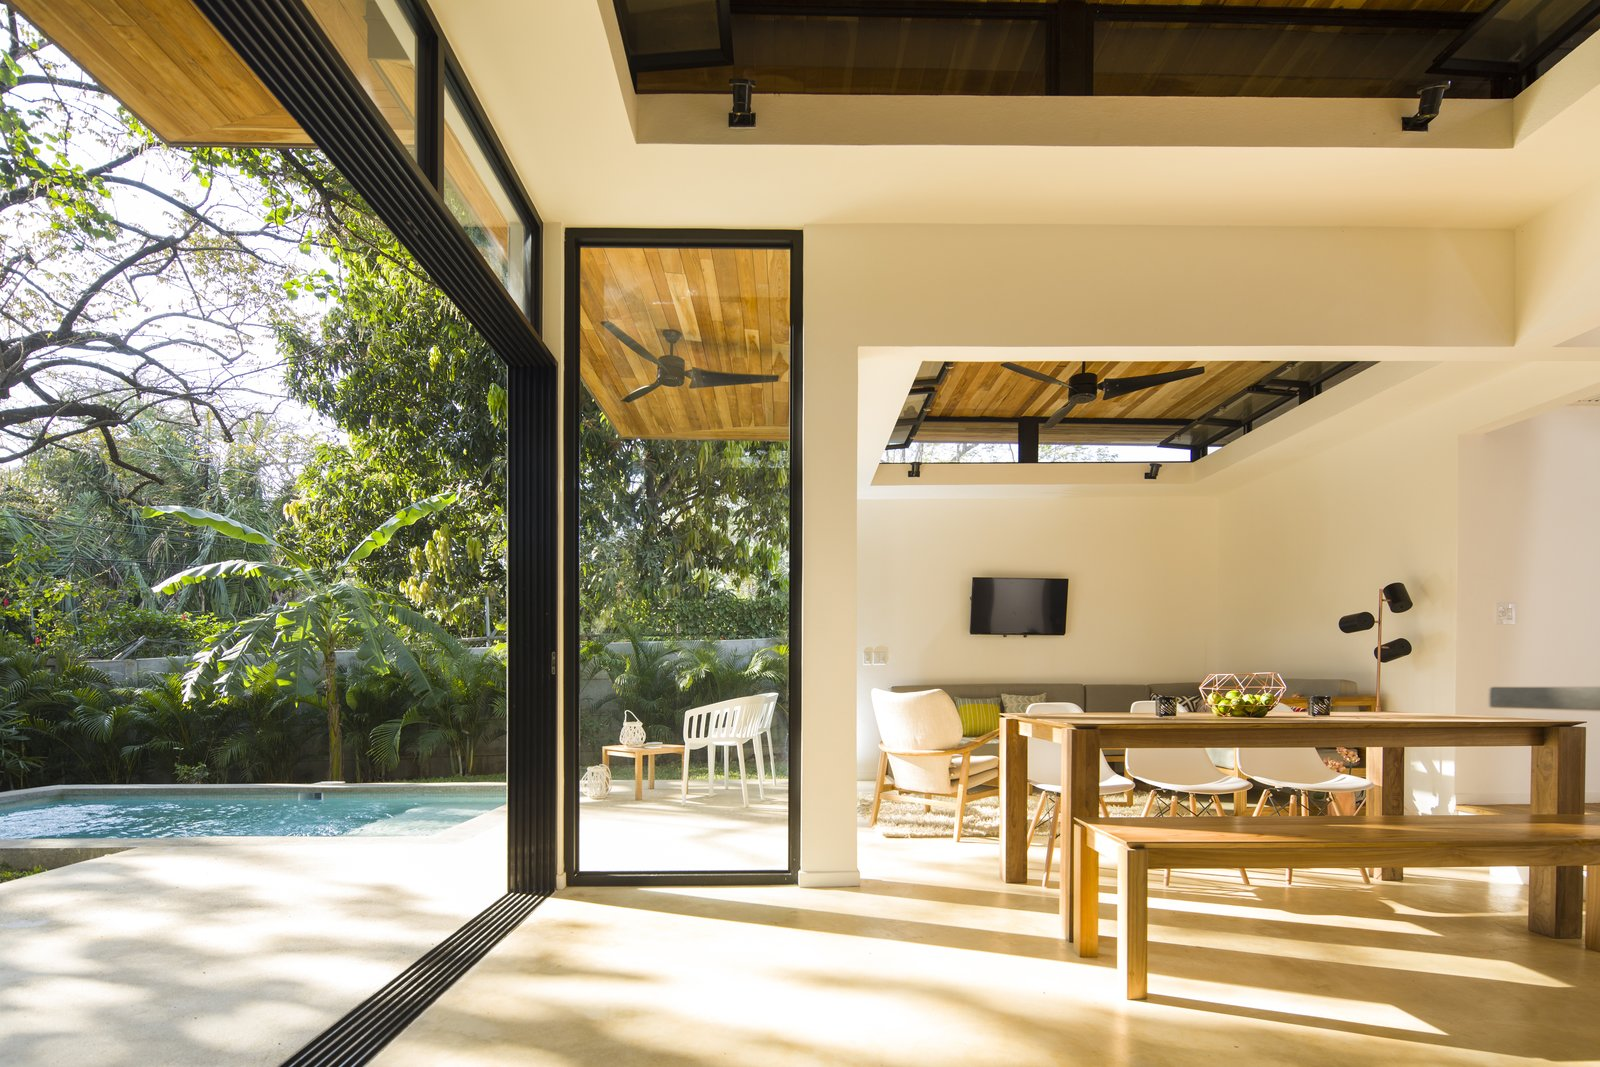 Large, operable glass doors and clerestory windows provide a fluid transition between the interior retreat and the exterior landscape.  Photo 5 of 11 in Decompress at This Boutique Hotel and Yoga Retreat in the Costa Rican Jungle